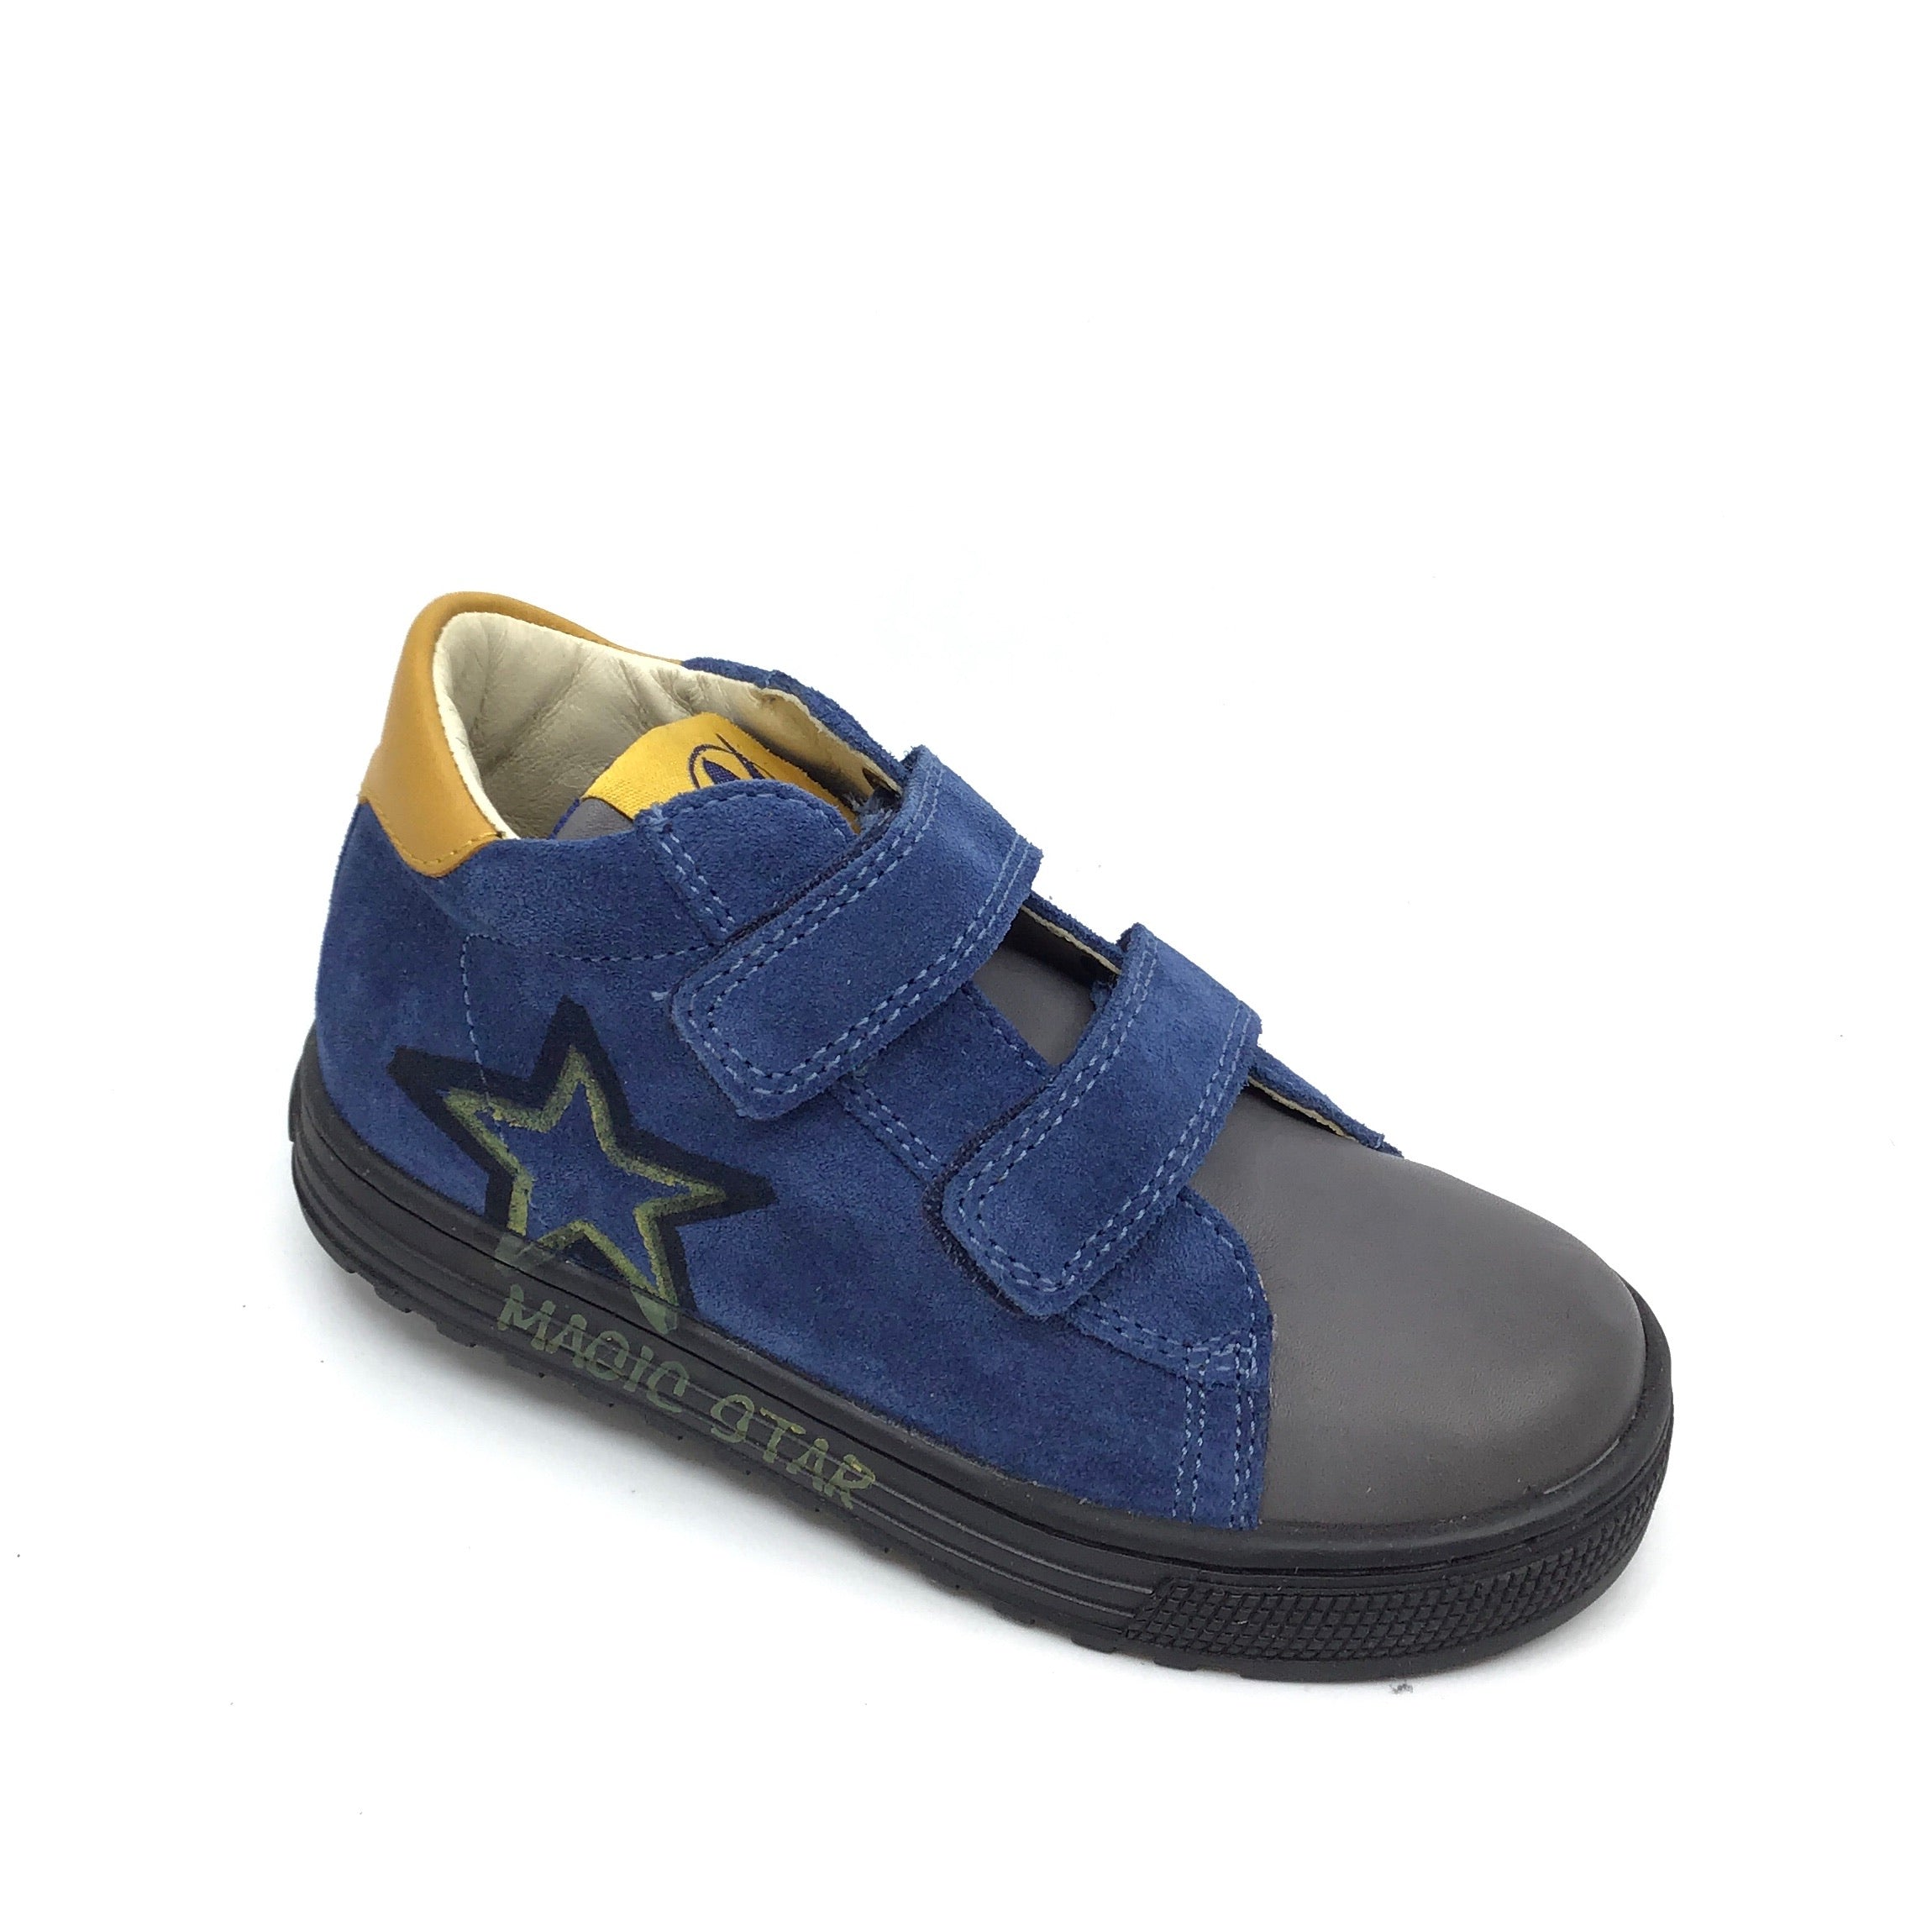 Naturino Double Velcro Blue Sneaker with Star